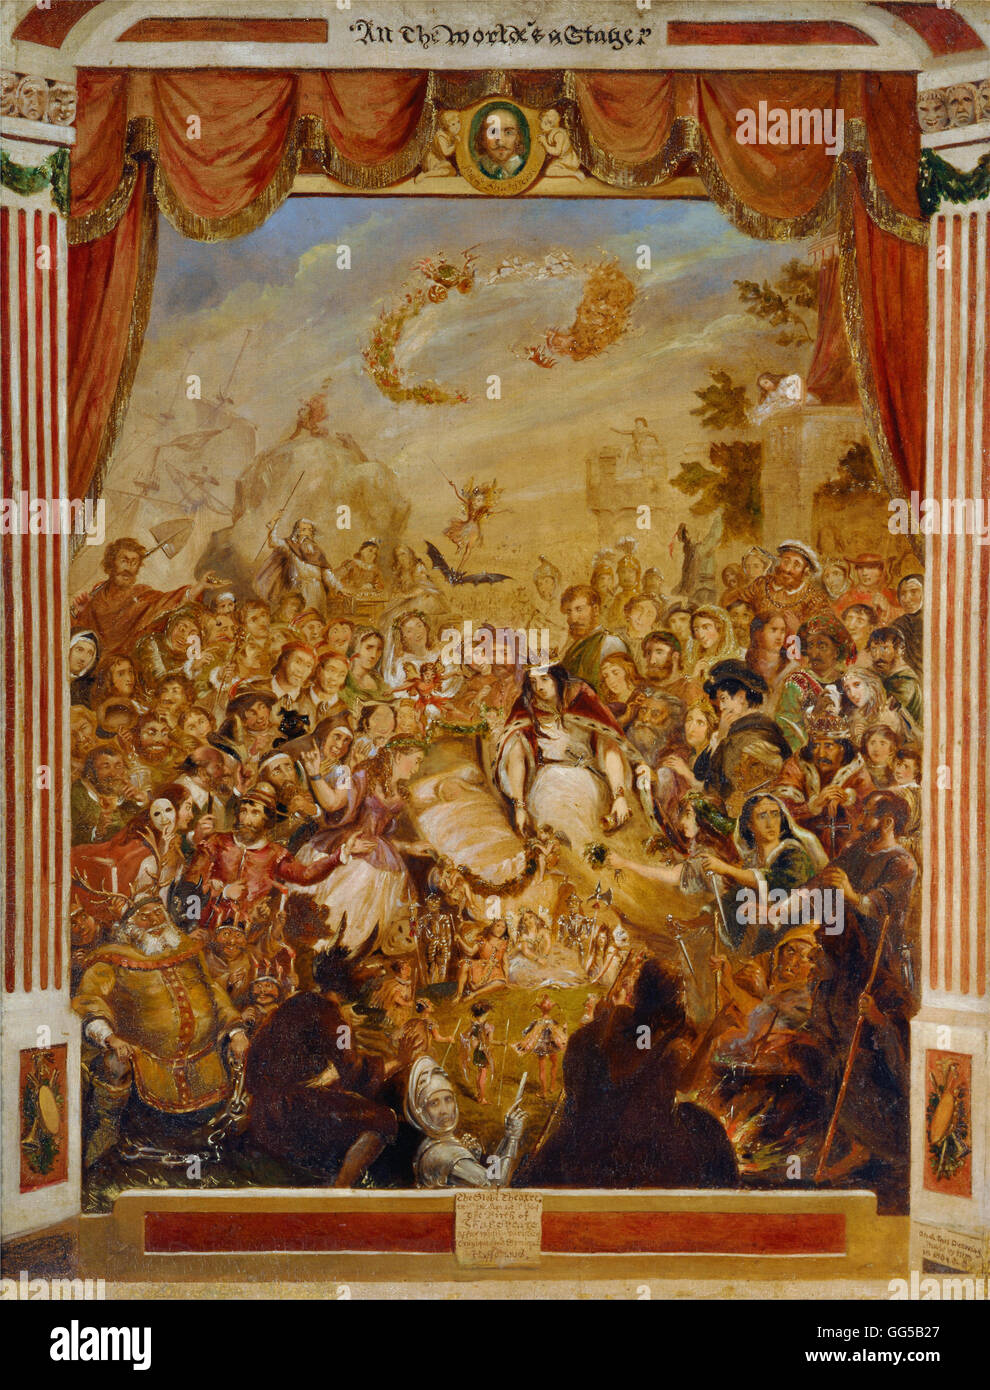 George Cruikshank - The First Appearance of William Shakespeare on the Stage of the Globe Theatre - Stock Image